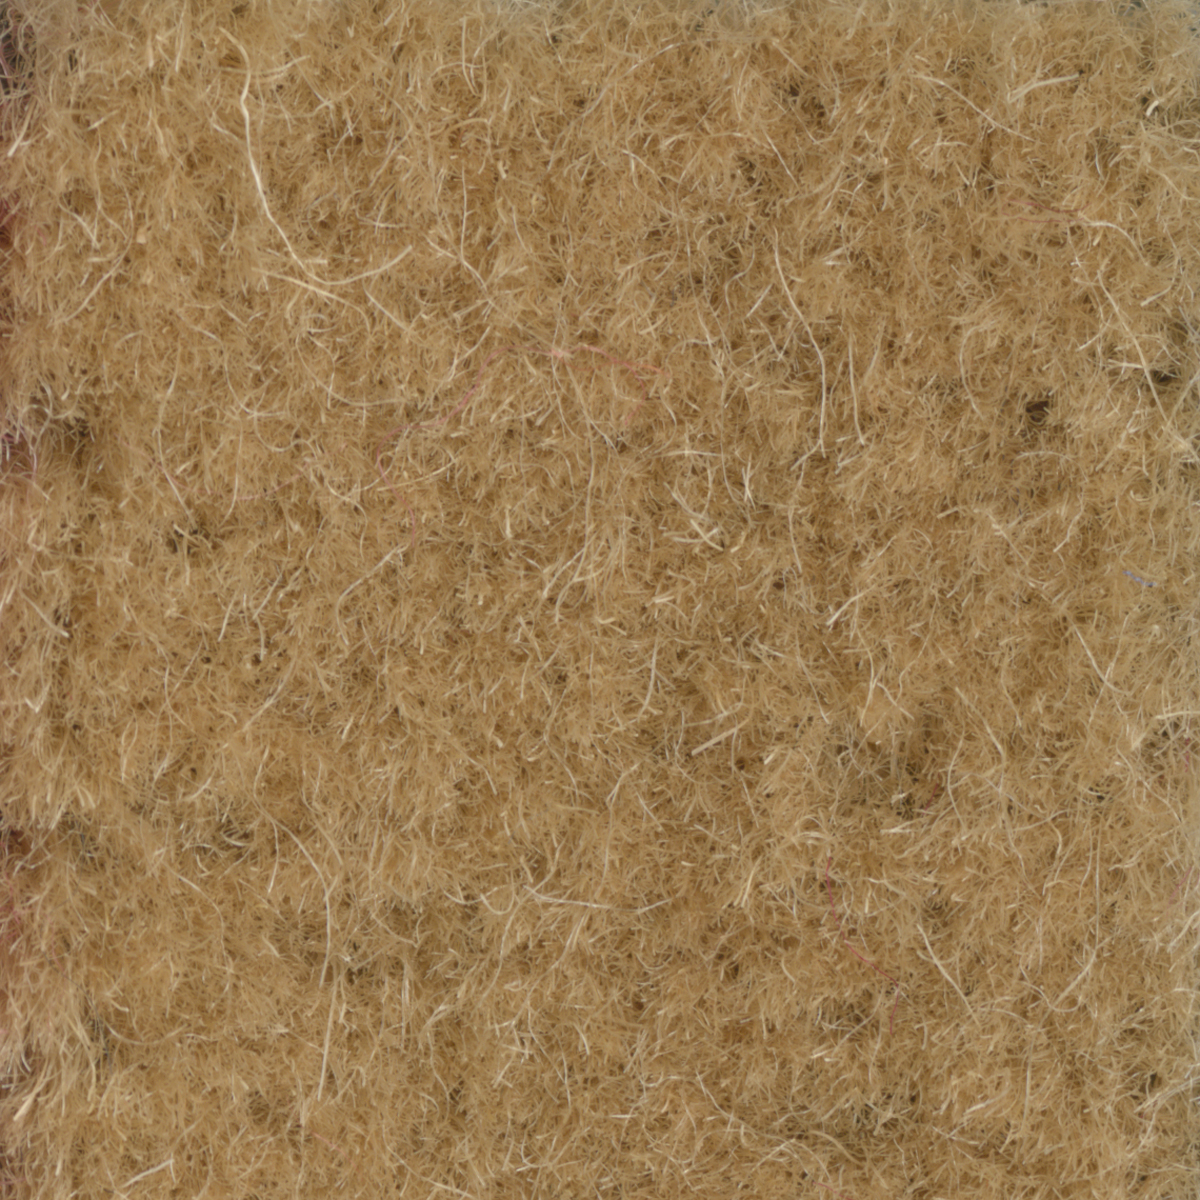 PALOMINO ENGLISH WILTON II WOOL CARPET